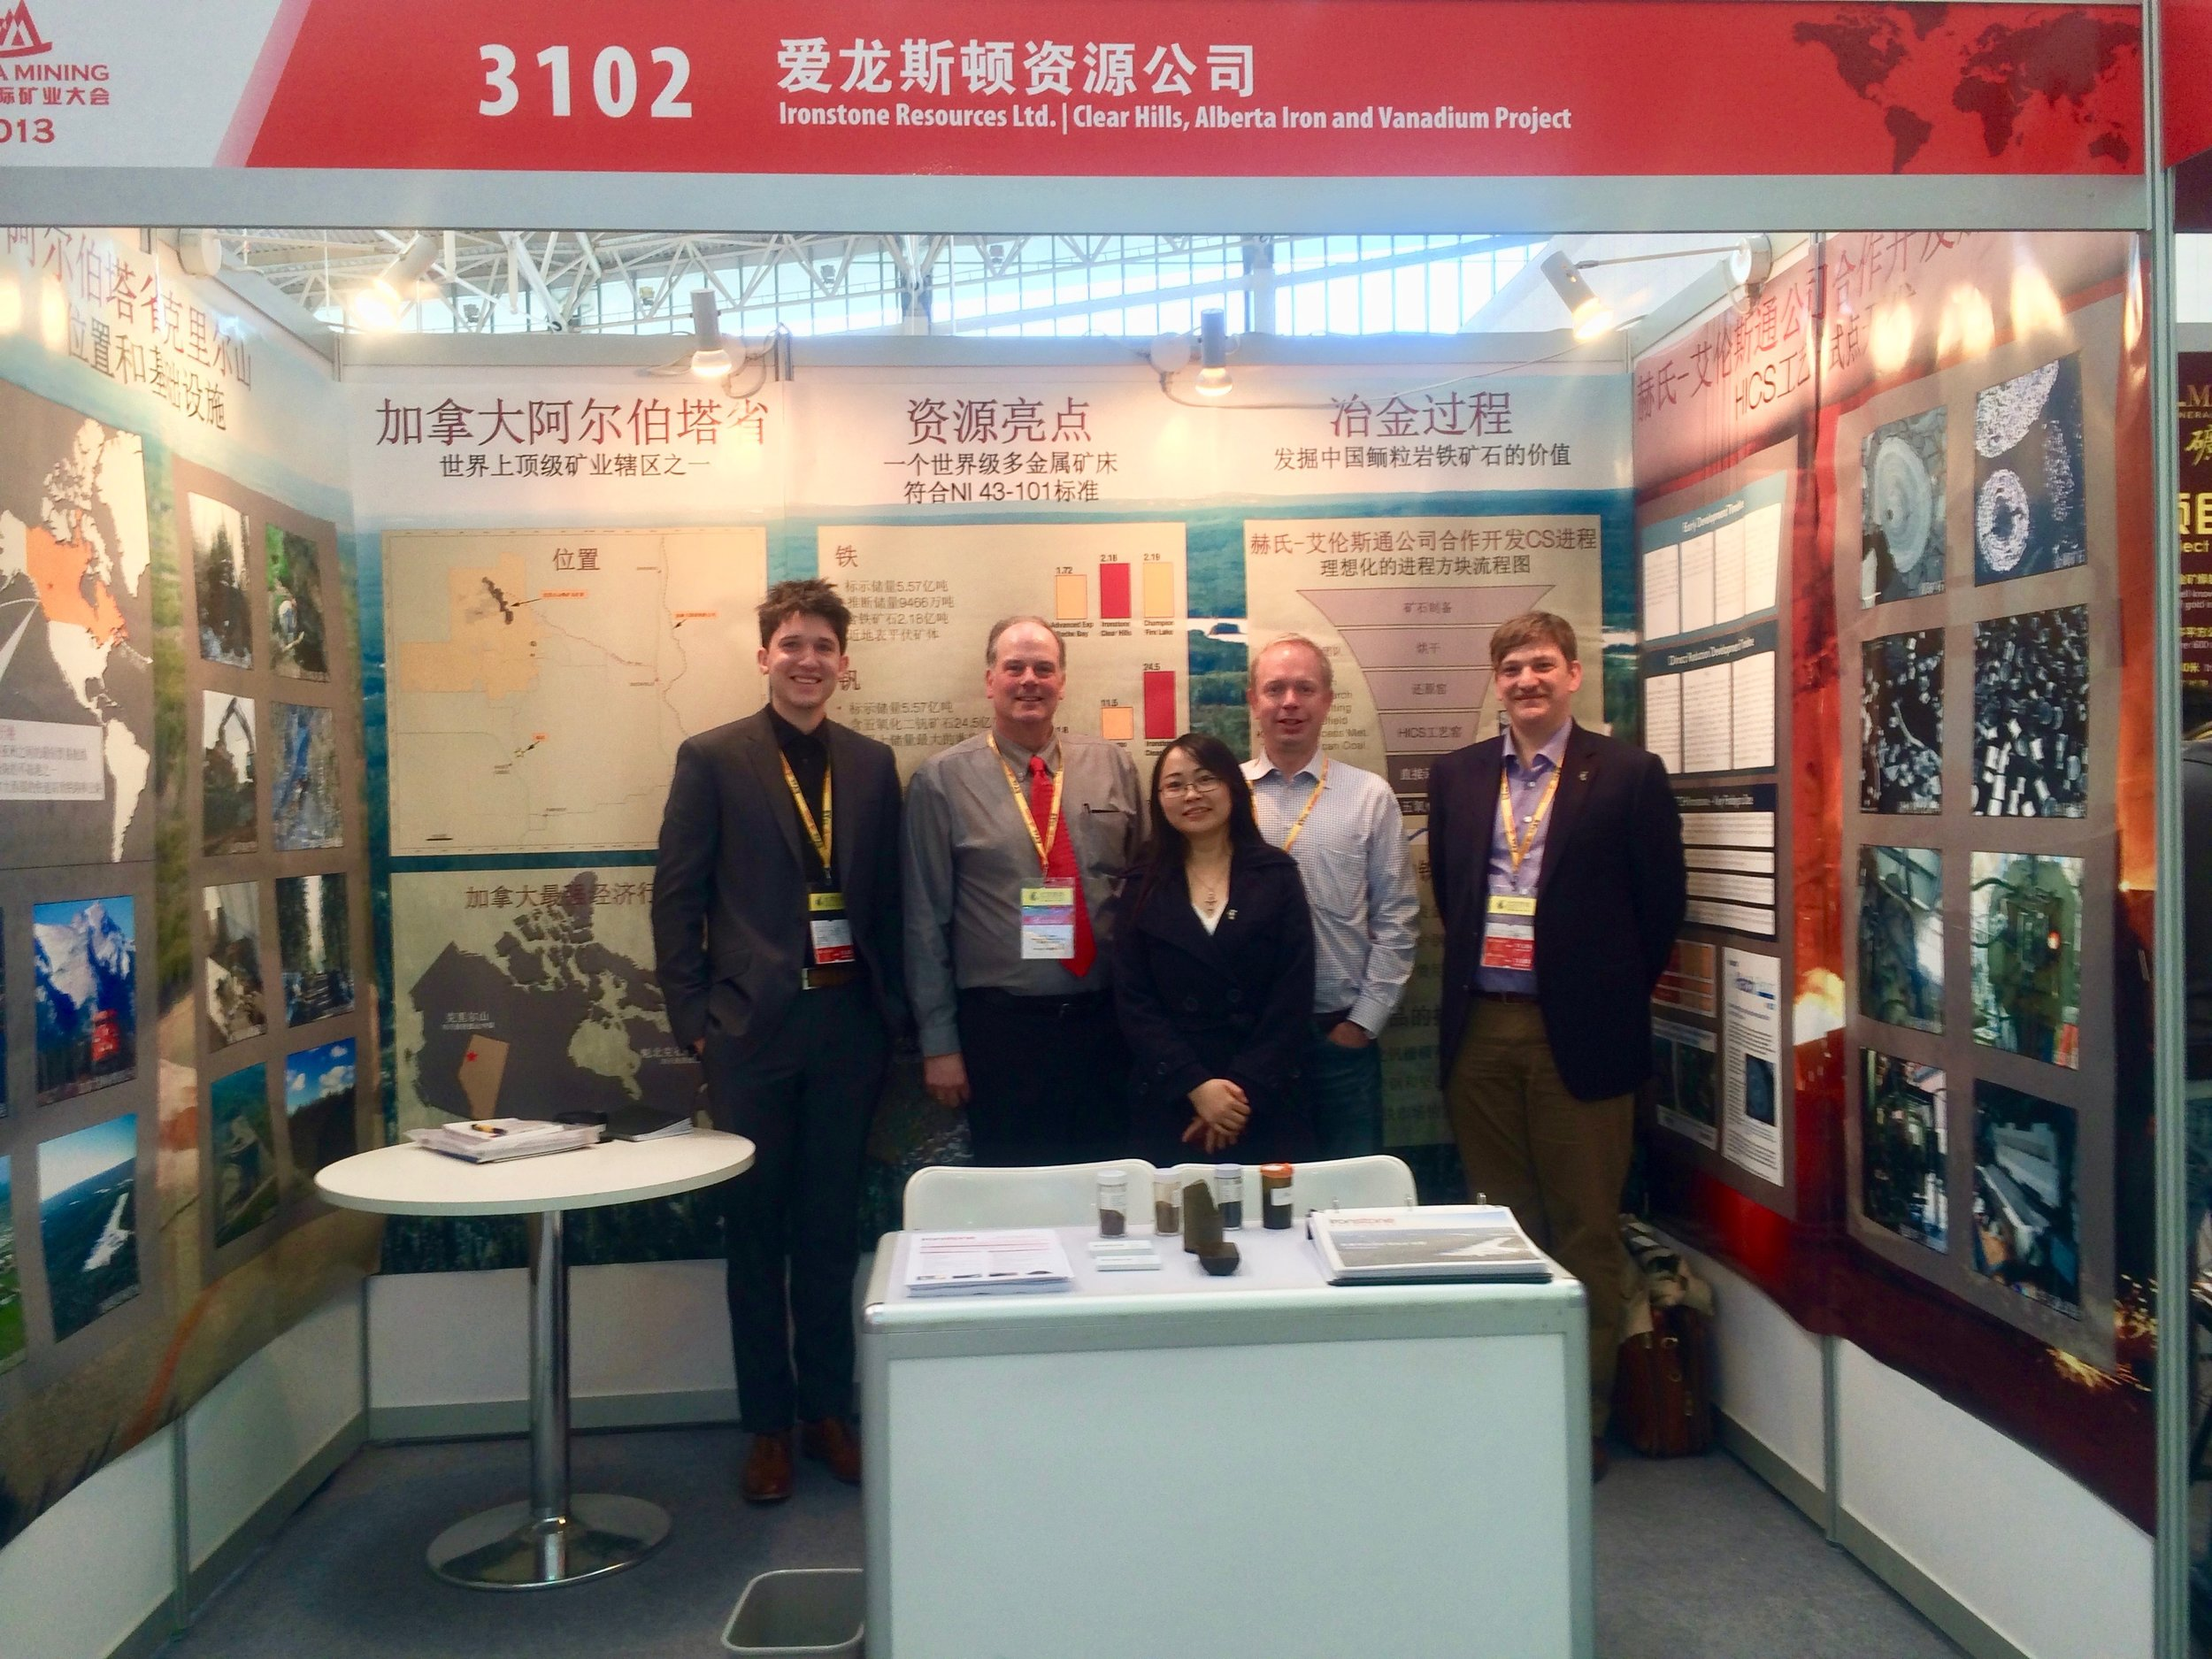 Ready to China Mining Expo